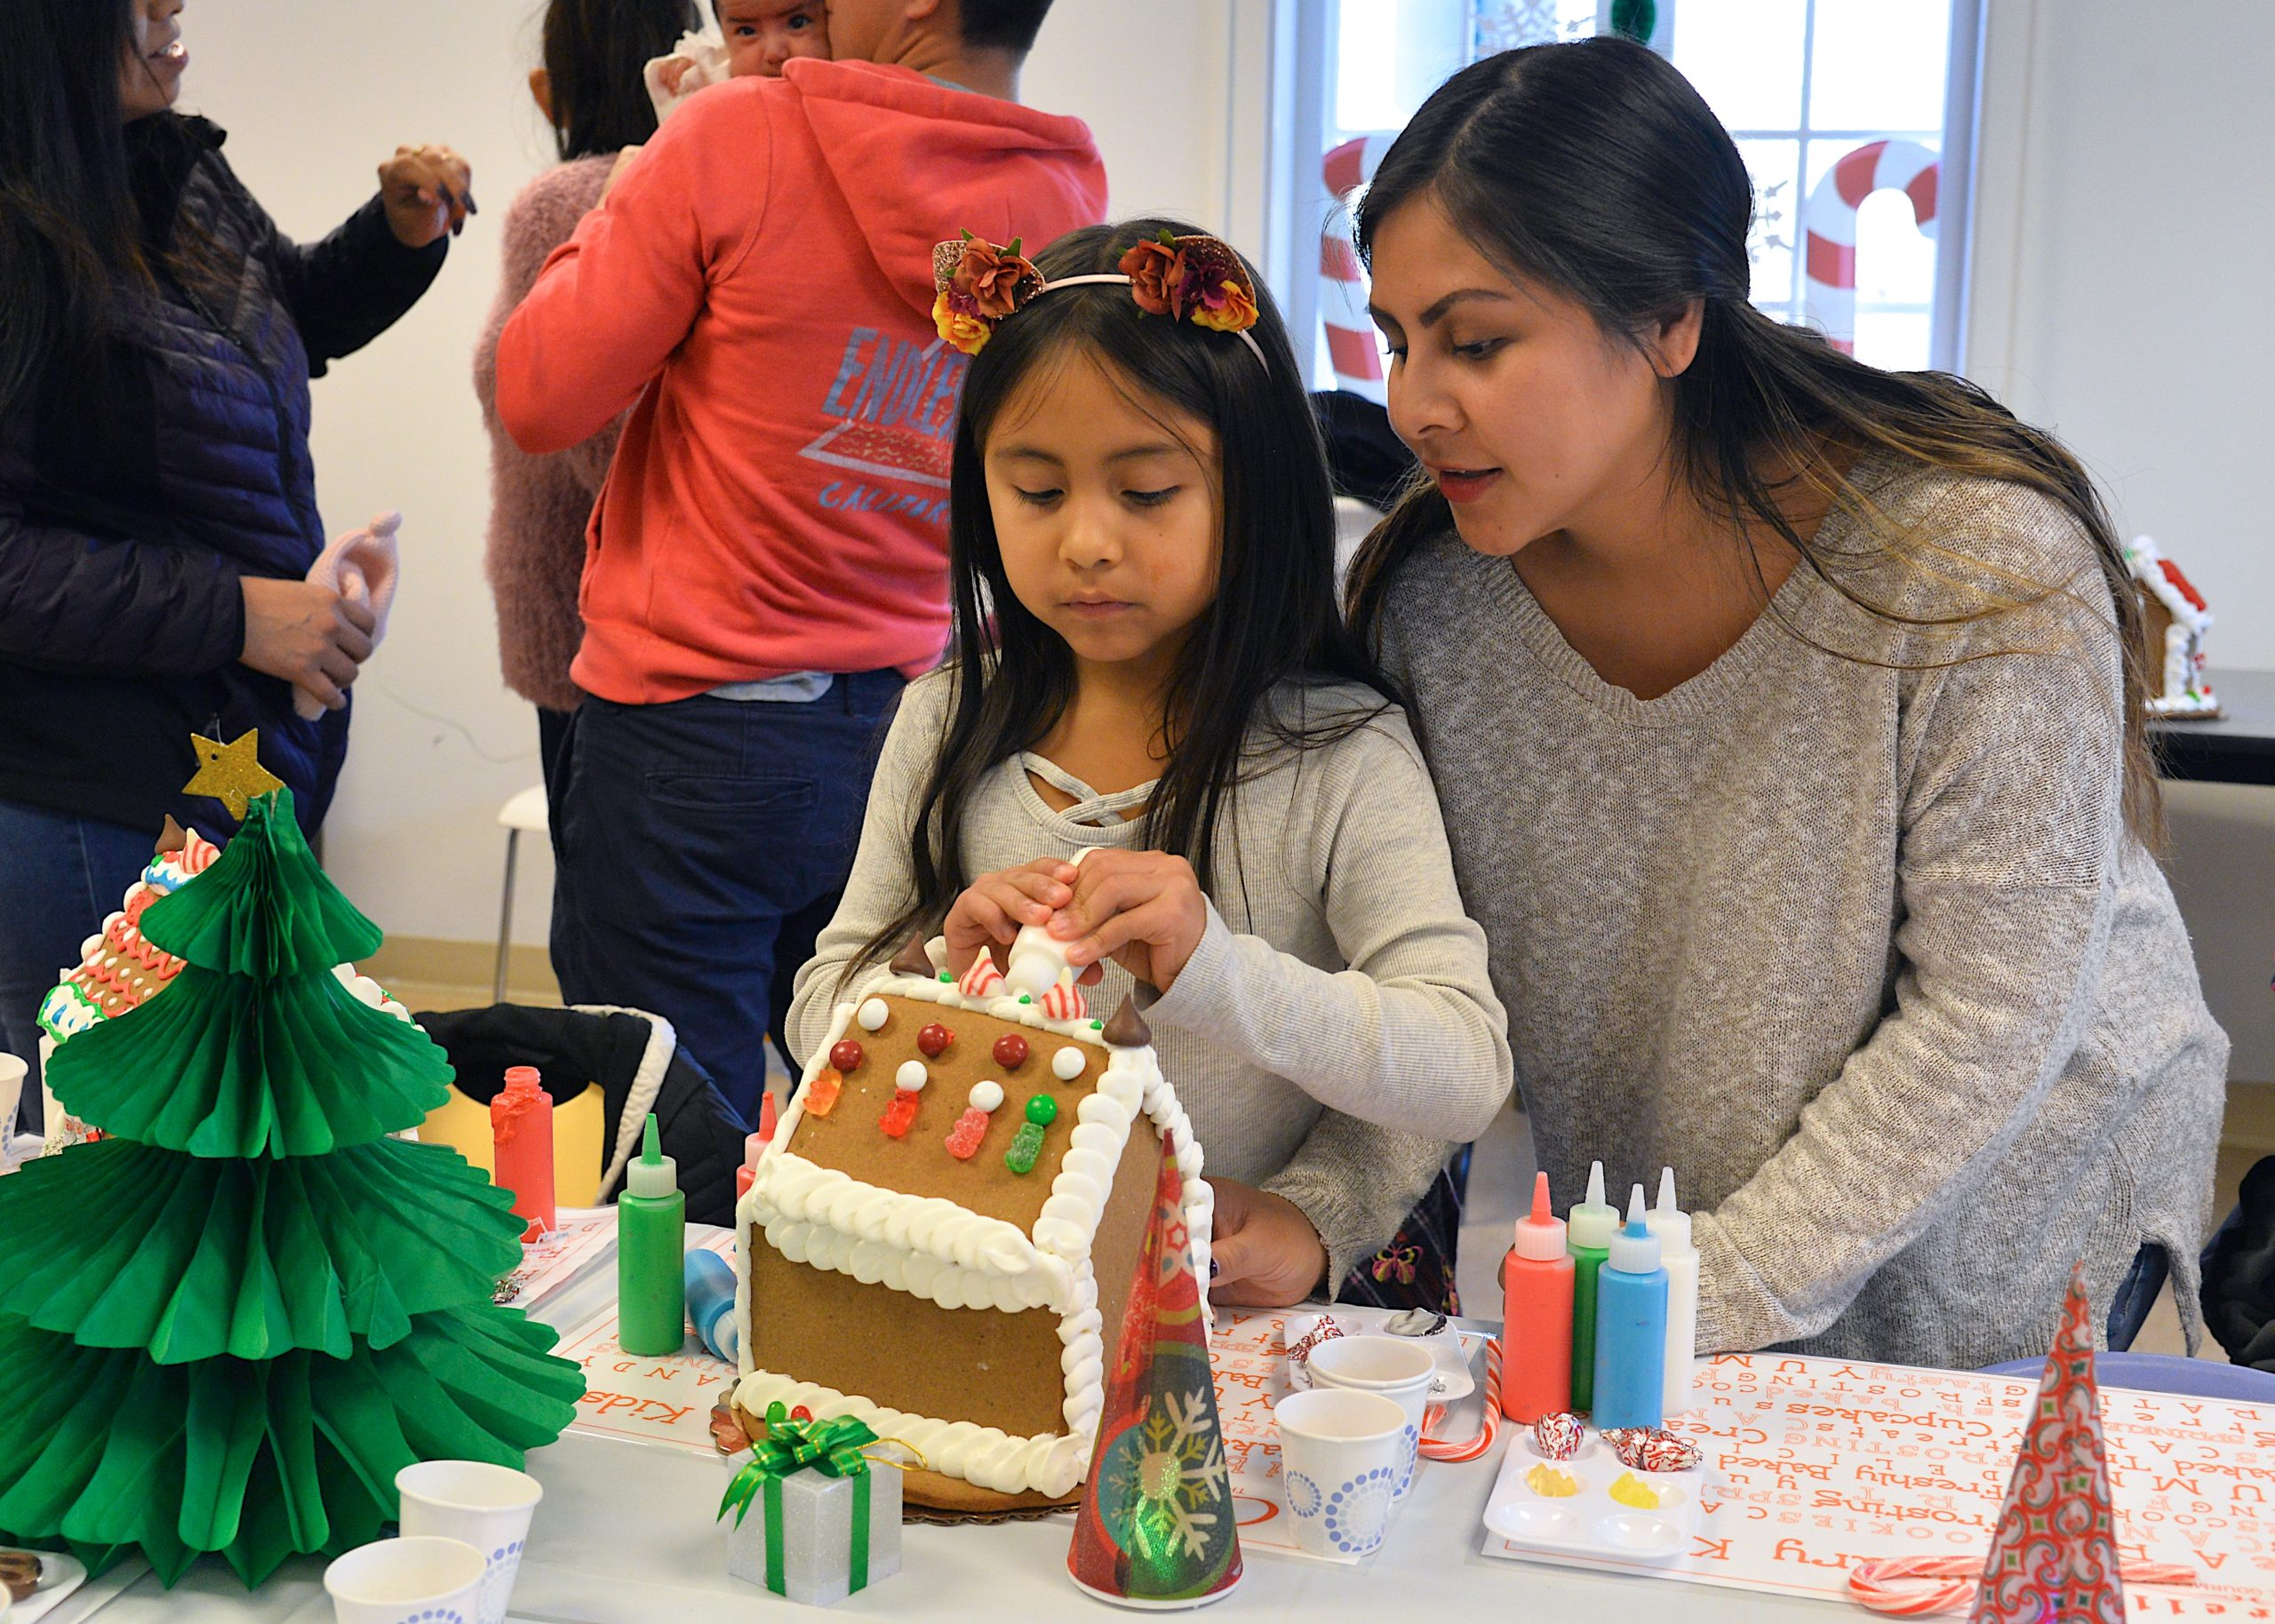 Guild Hall offered an opportunity to get in the holiday spirit by making gingerbread houses on Saturday. Sofia Calle and Andrea Vera working together.  KYRIL BROMLEY